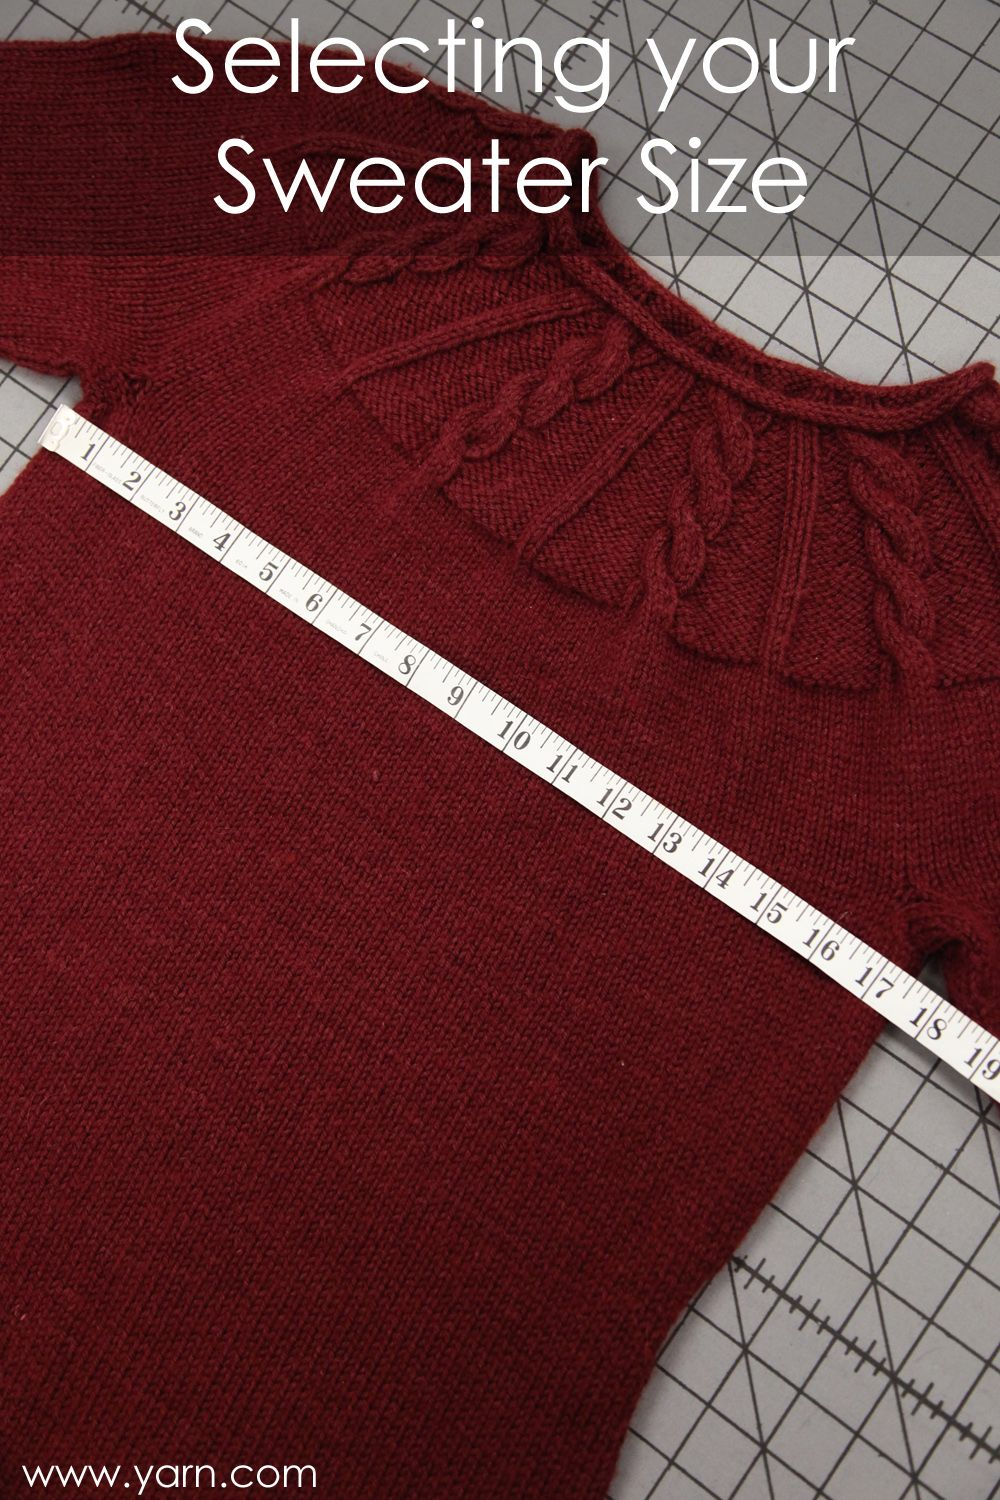 How to Choose the Right Size Sweater to Knit